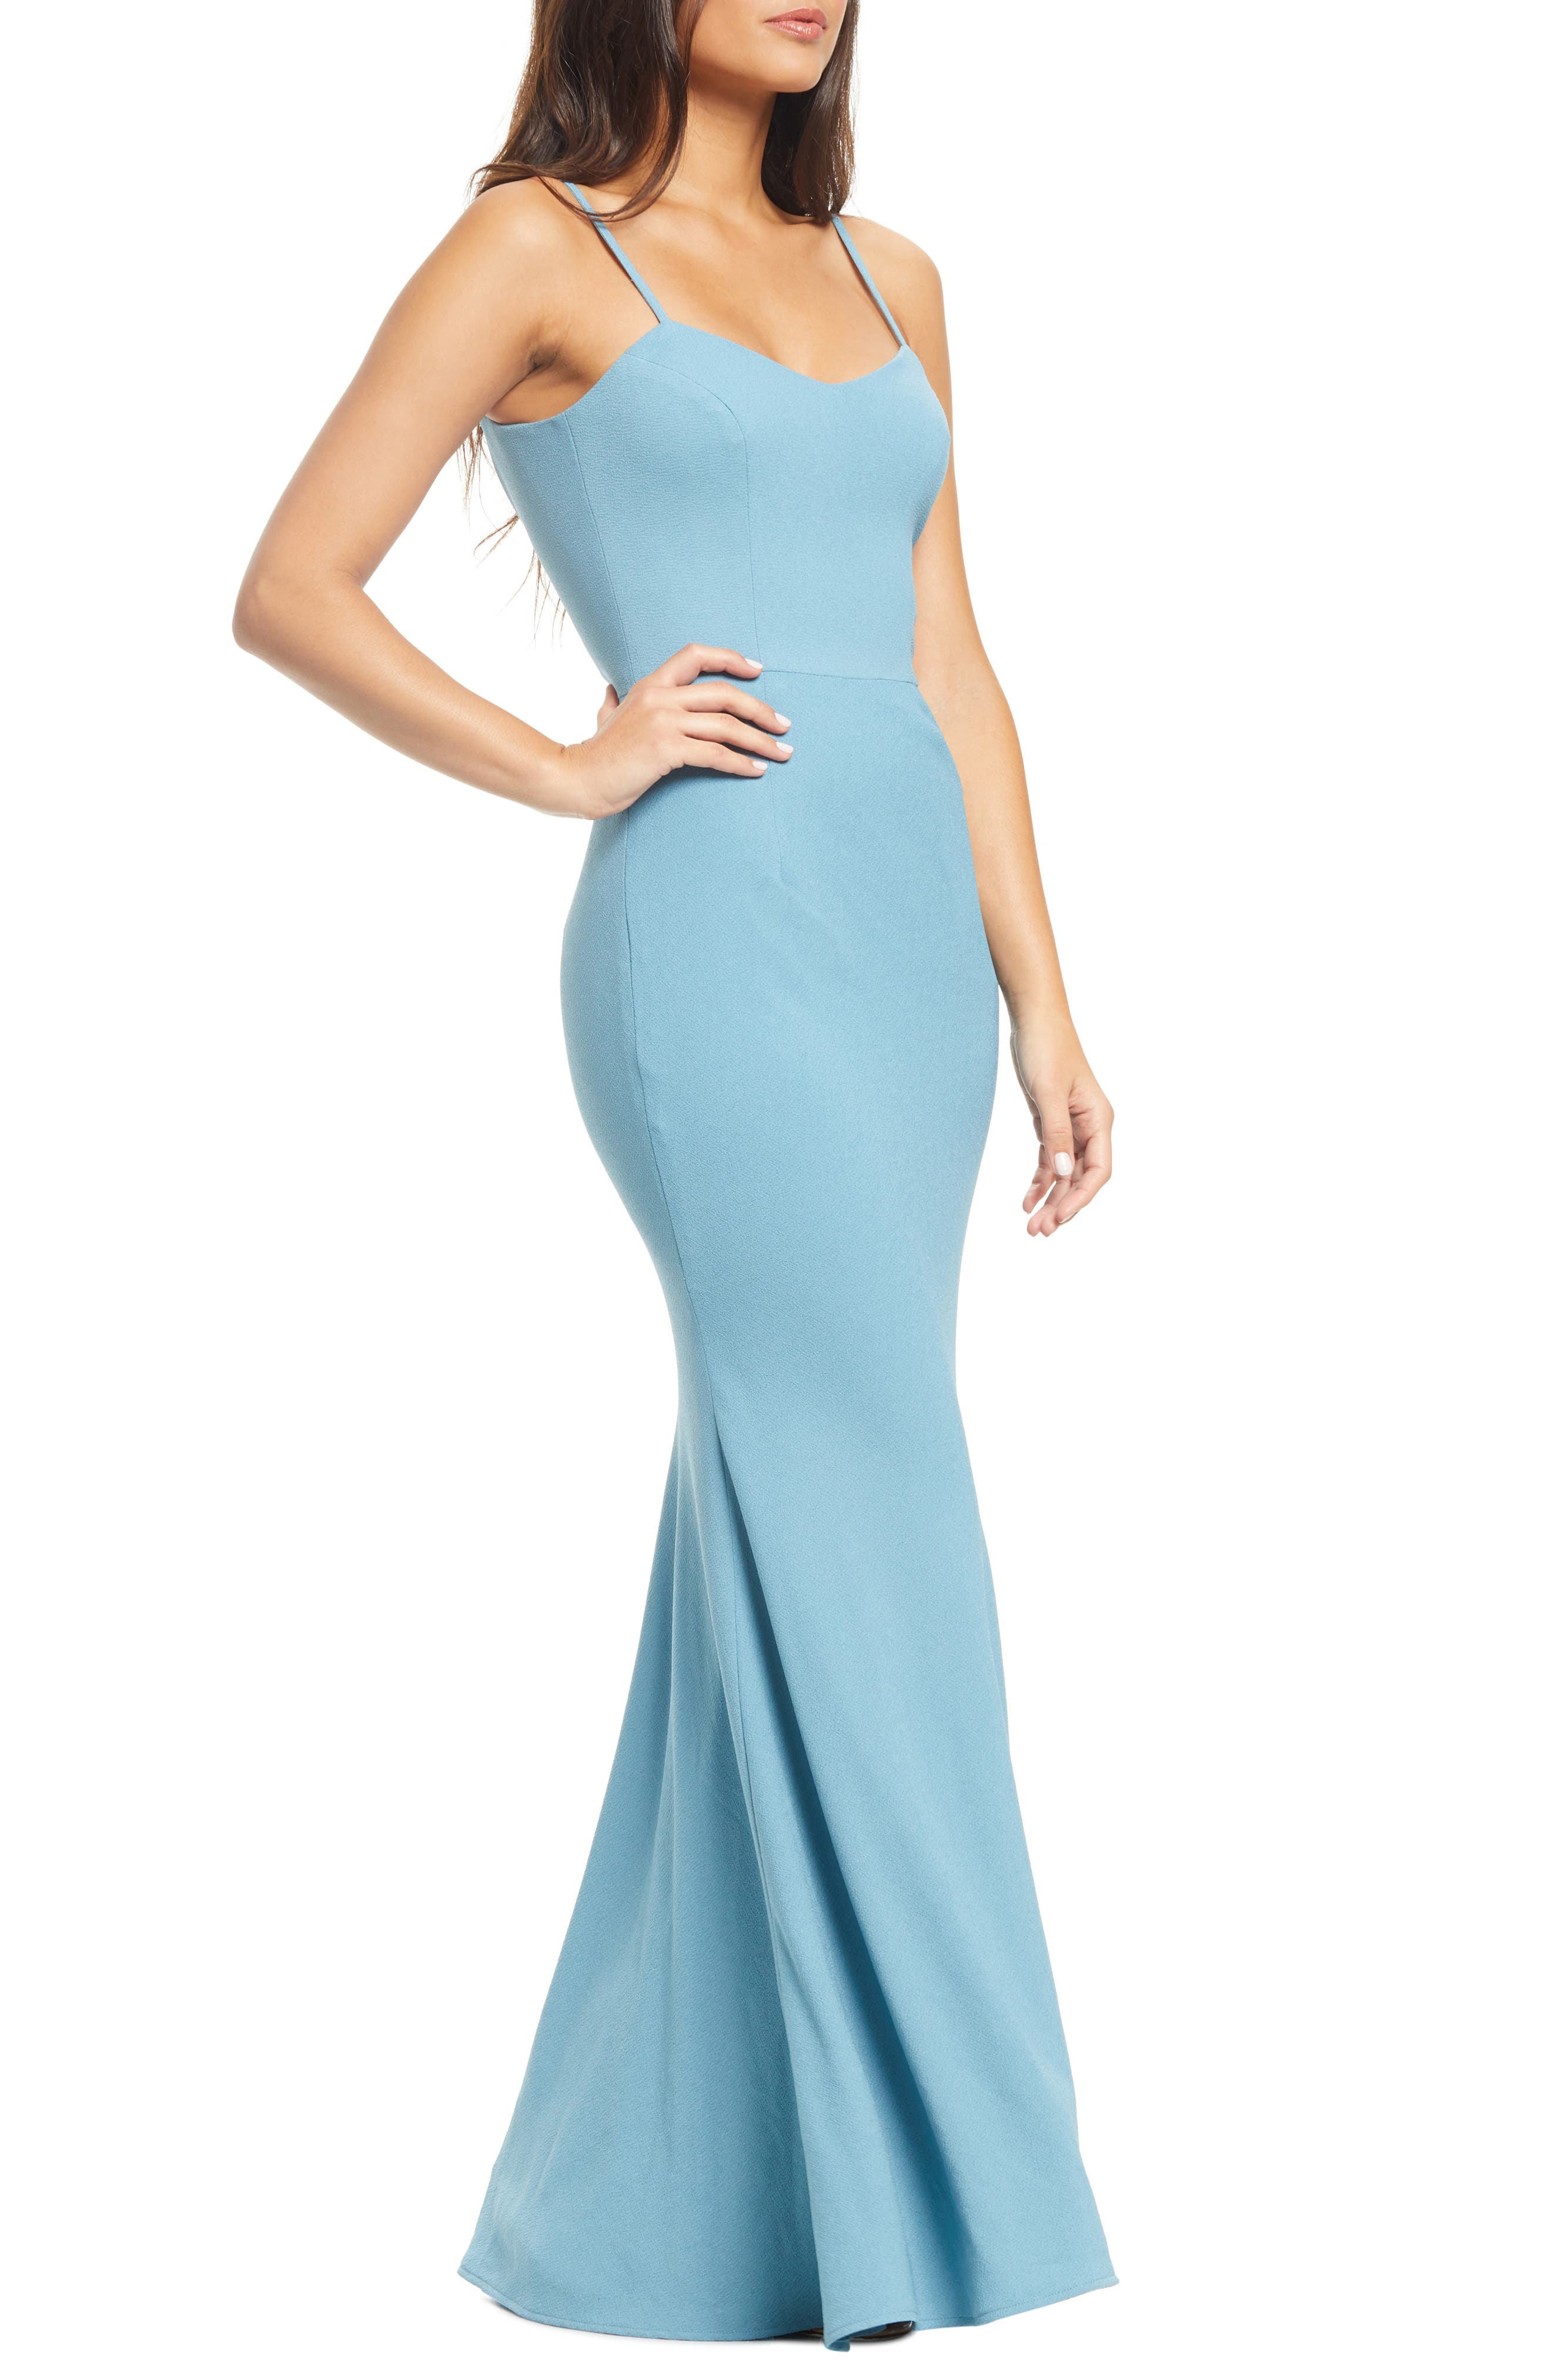 Teal Prom Dresses with Straps